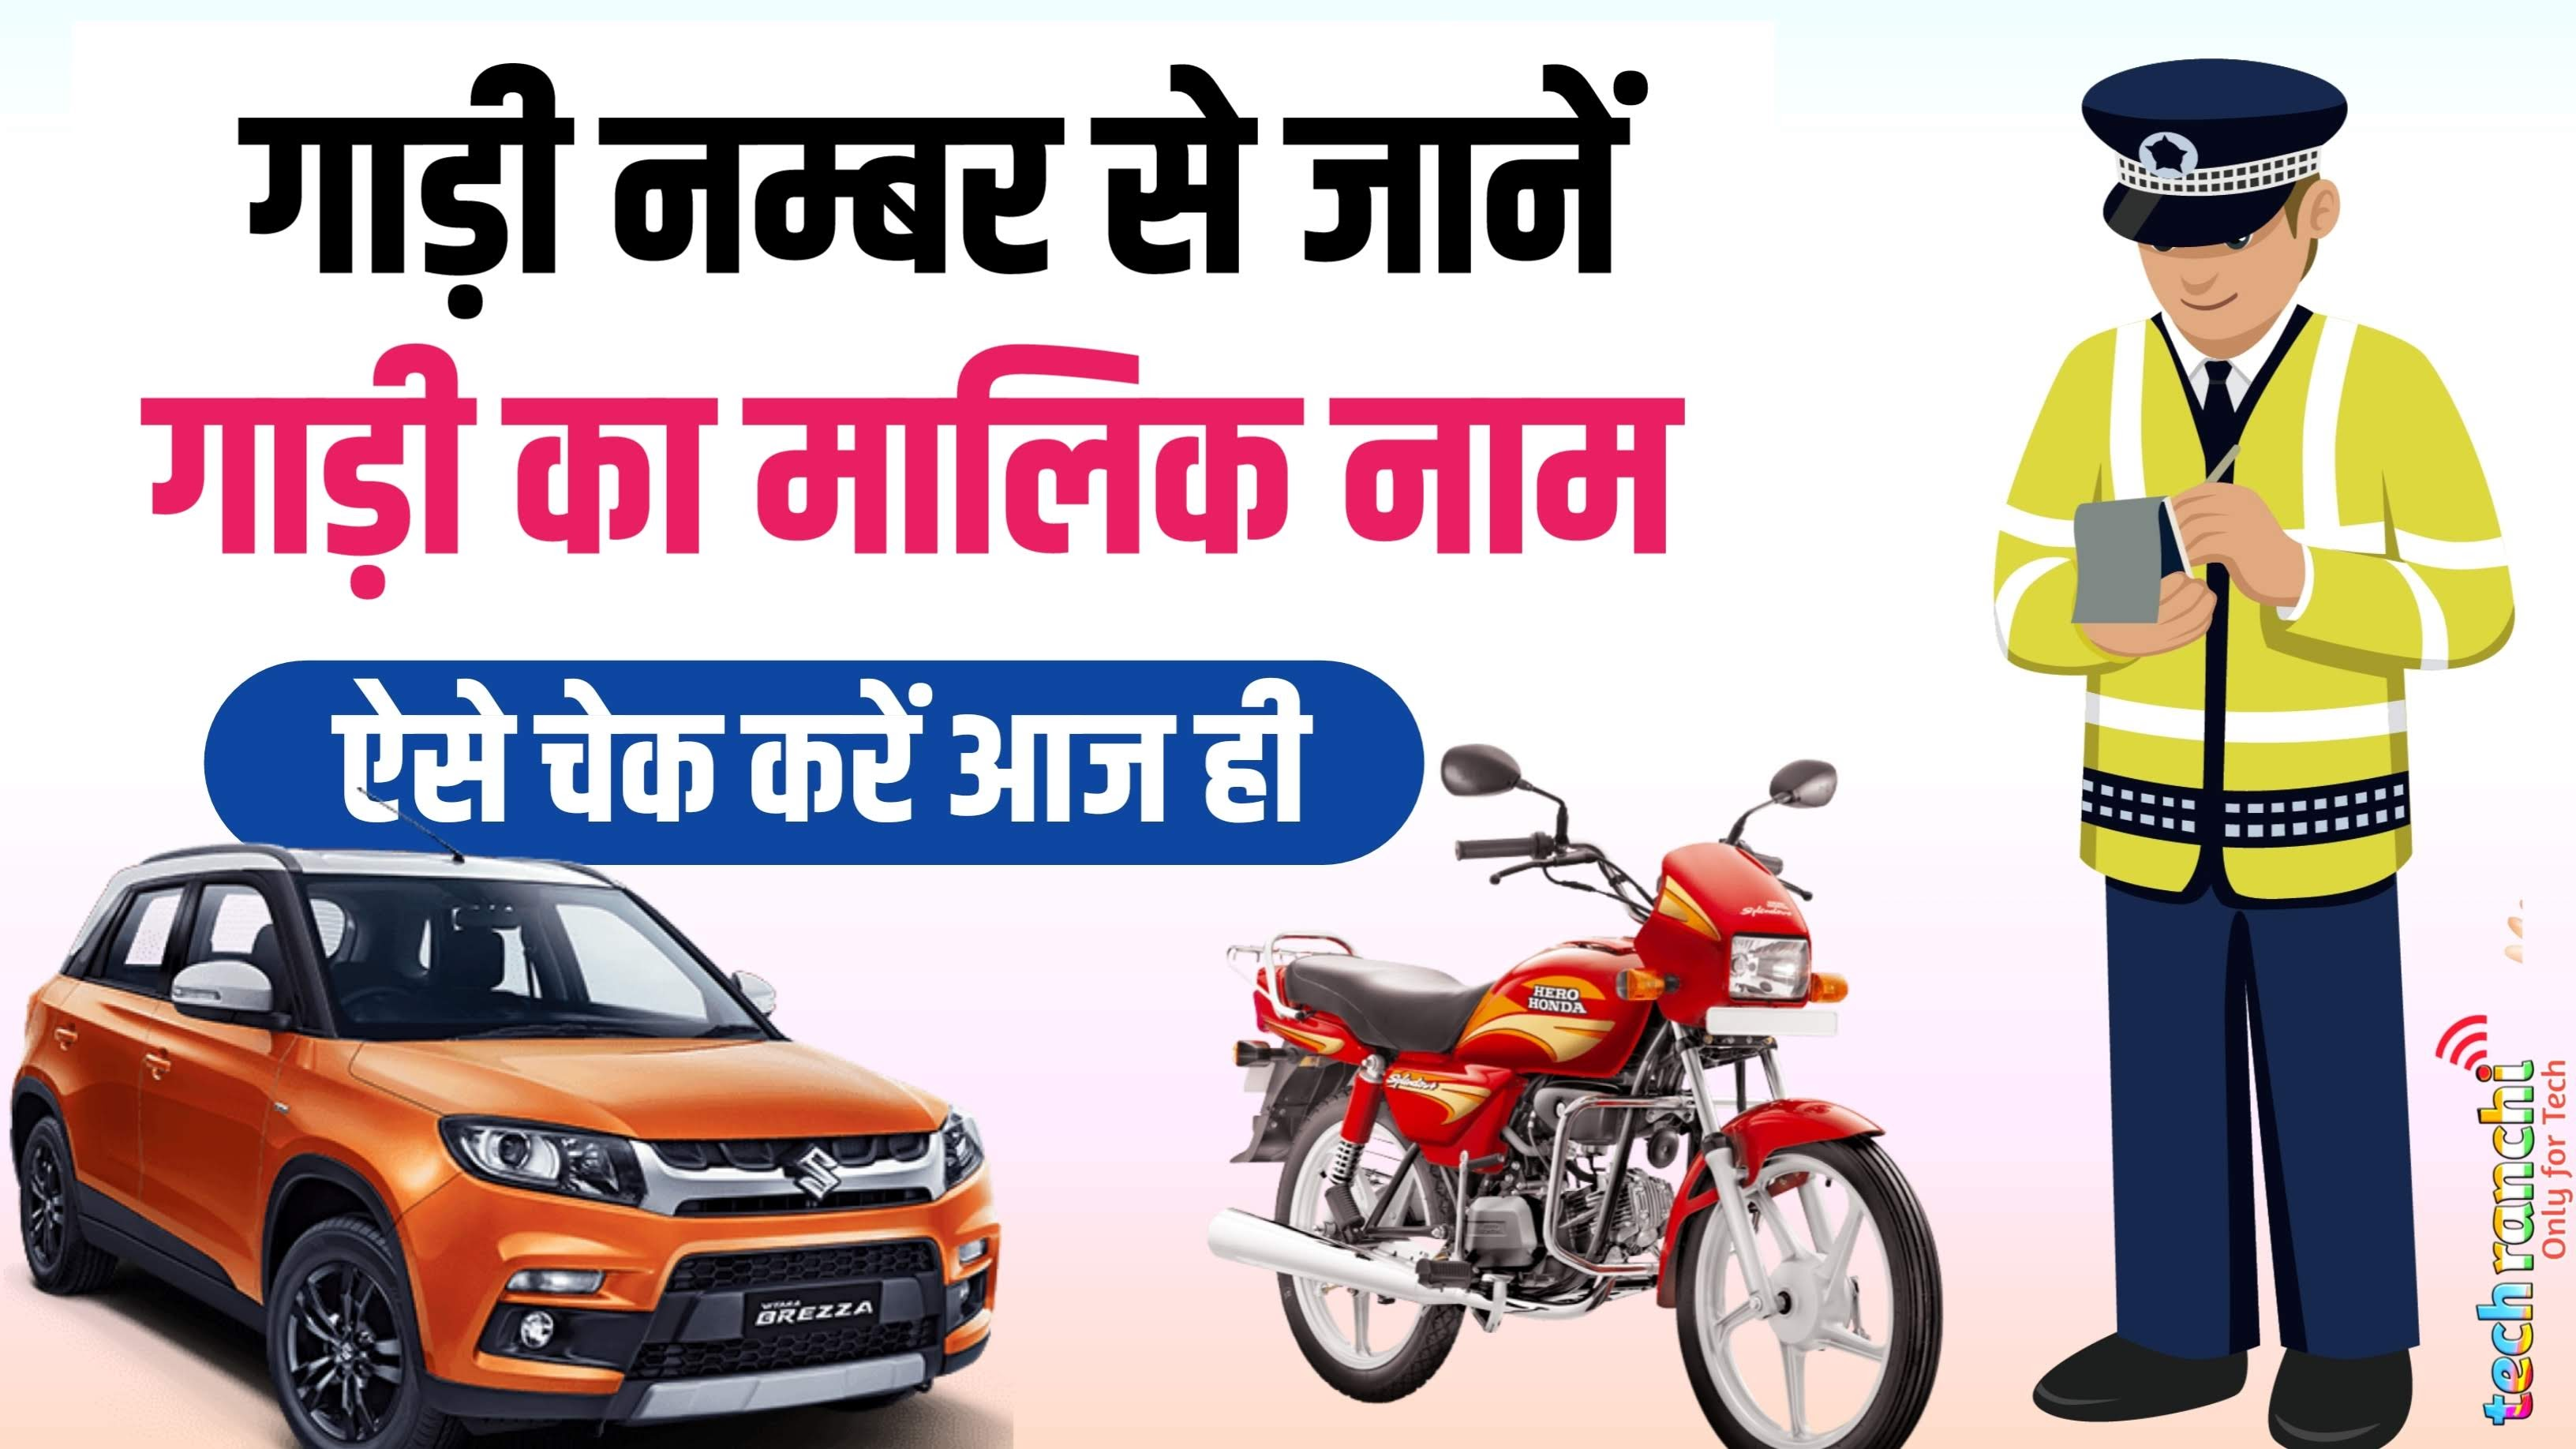 tech,Android app,mParivahan, Vehicle Details, Vehicle Owener Details, How to Know Vehicle Owener Details,RTO,tech ranchi,